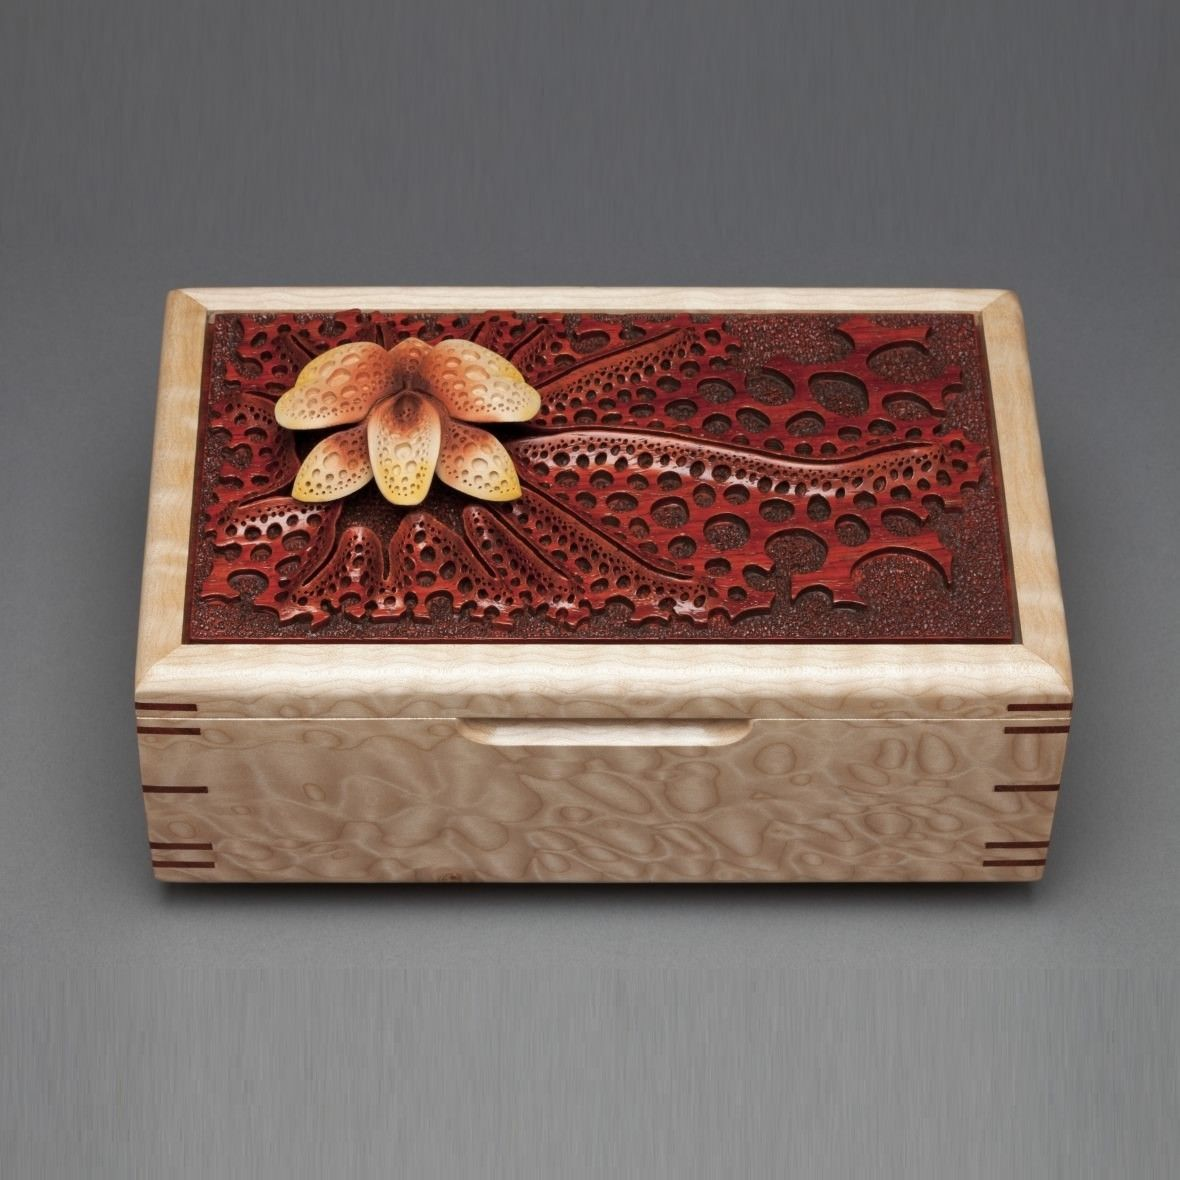 Custom made wood jewelry box orchid by mark doolittle for Jewelry box made of wood